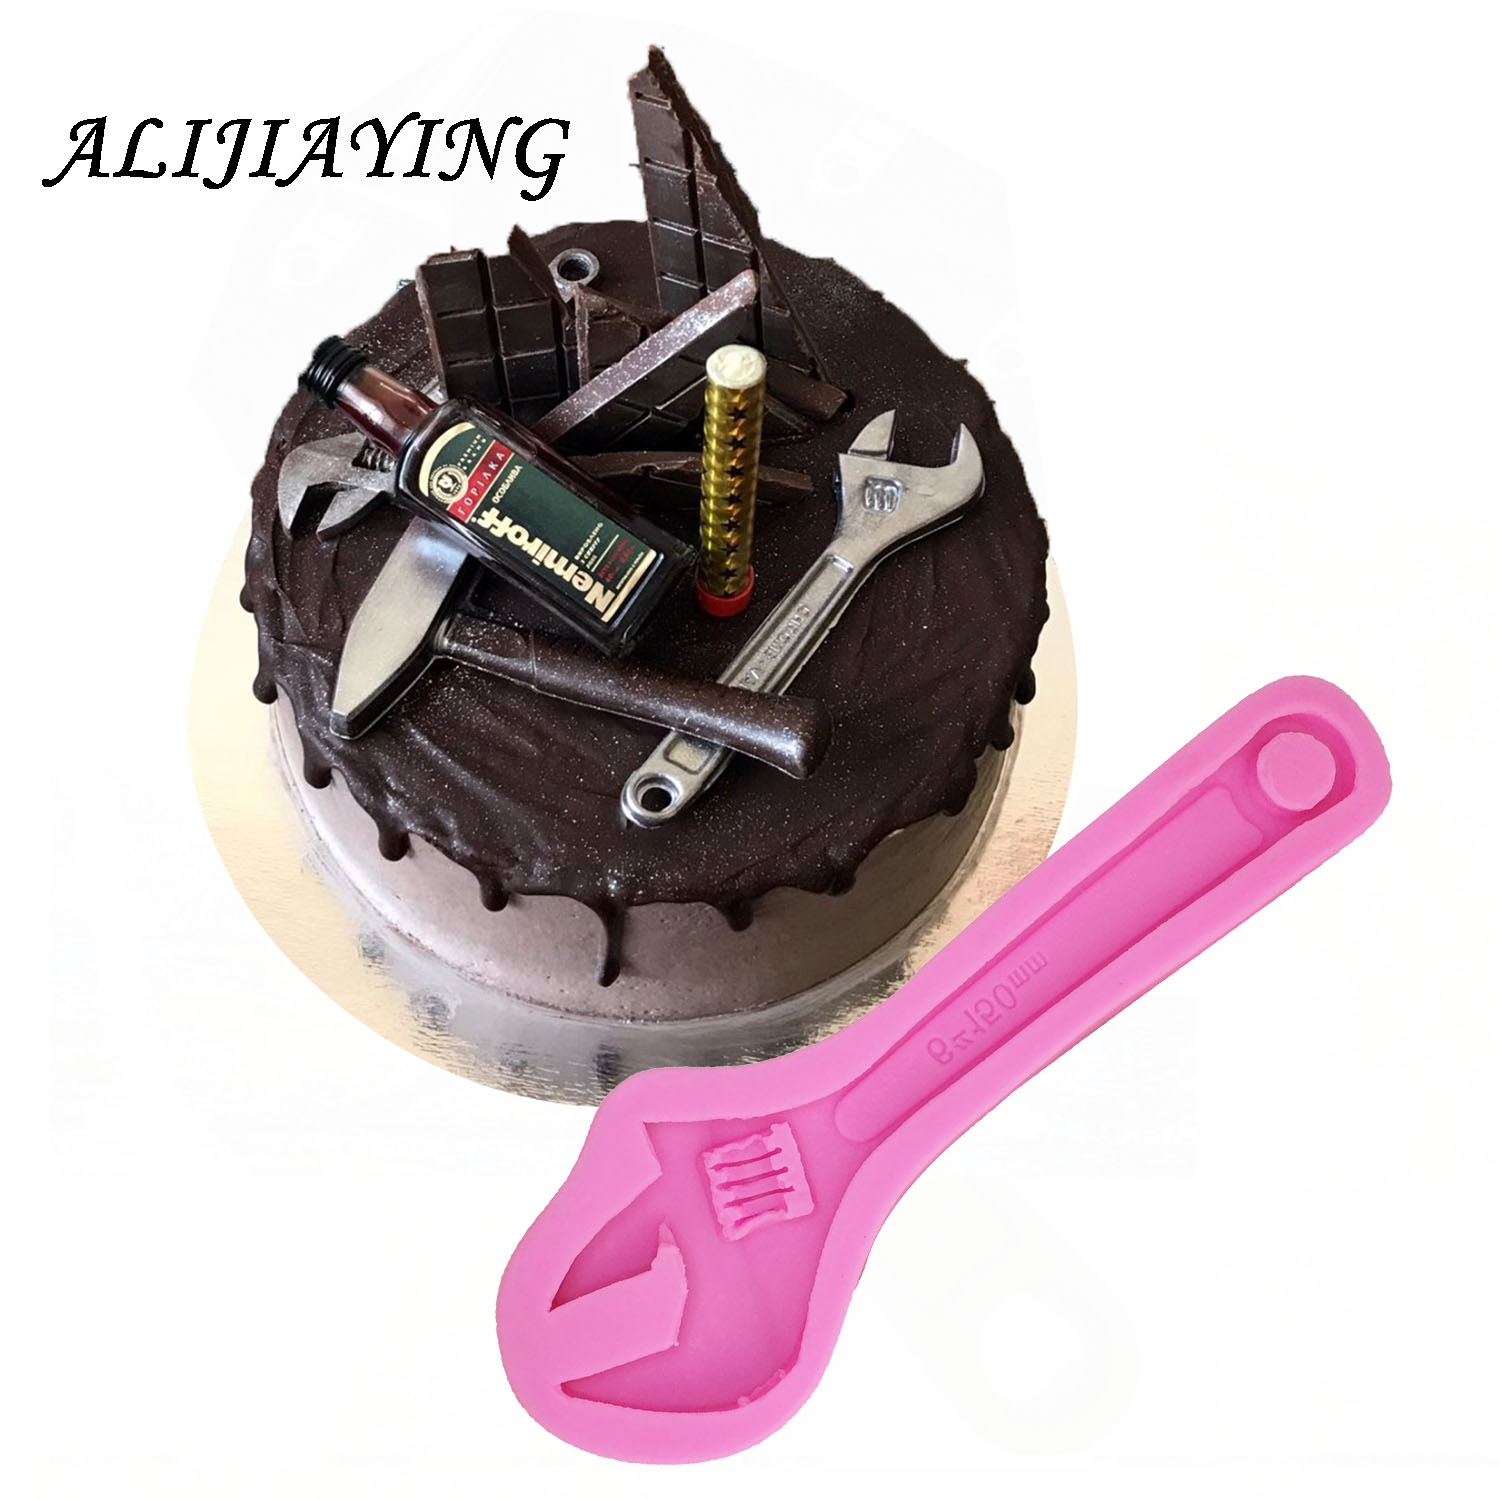 DIY Repair Tools Silicone Mold Wrench Gadget Fondant Cake Mold Chocolate Silicone Mould Cake Decorating Tools D0514